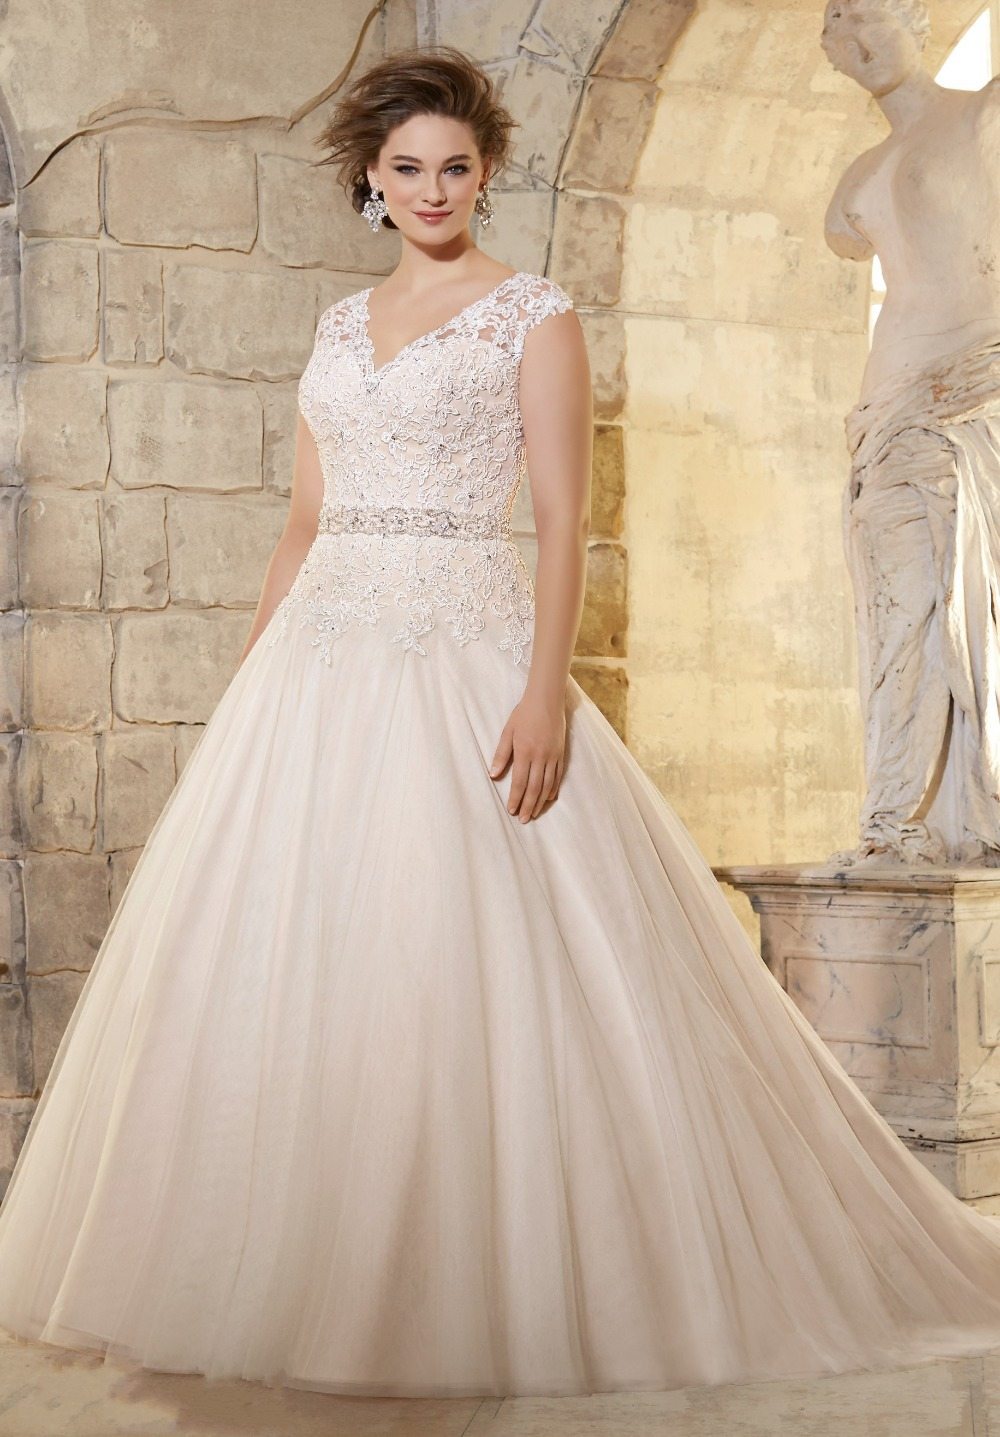 The elegant wedding dresses in plus size plus size for Wedding dress plus size